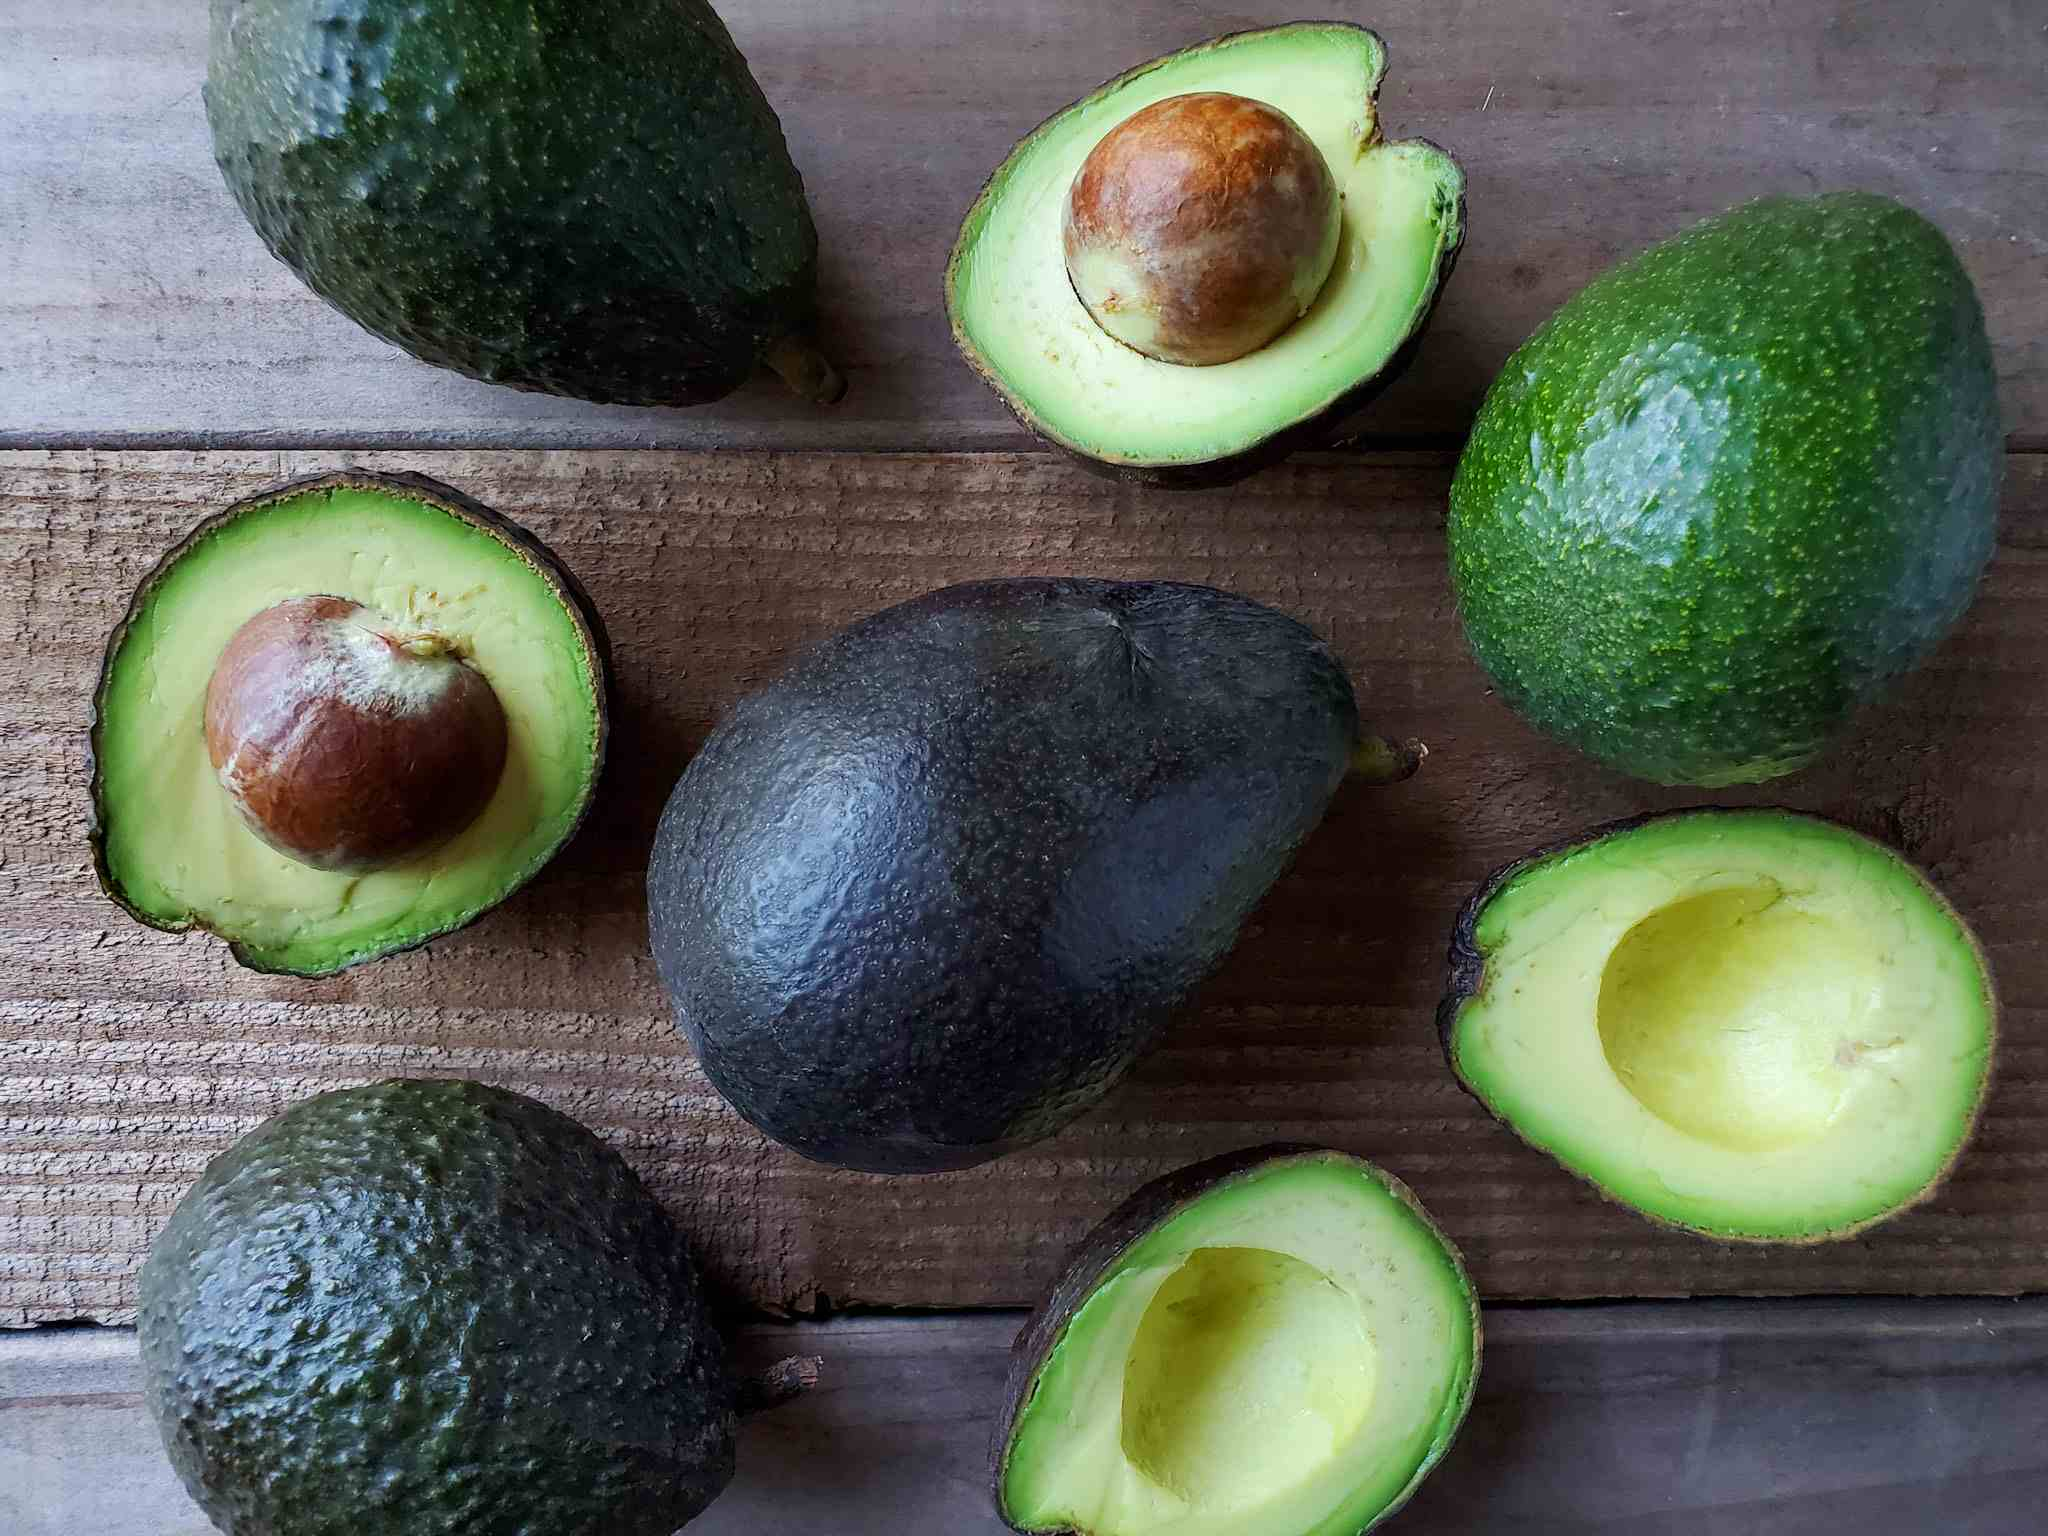 Avocado is a bright green fruit with a large pit and dark leathery skin. They're also known as alligator pears or butter fruit.